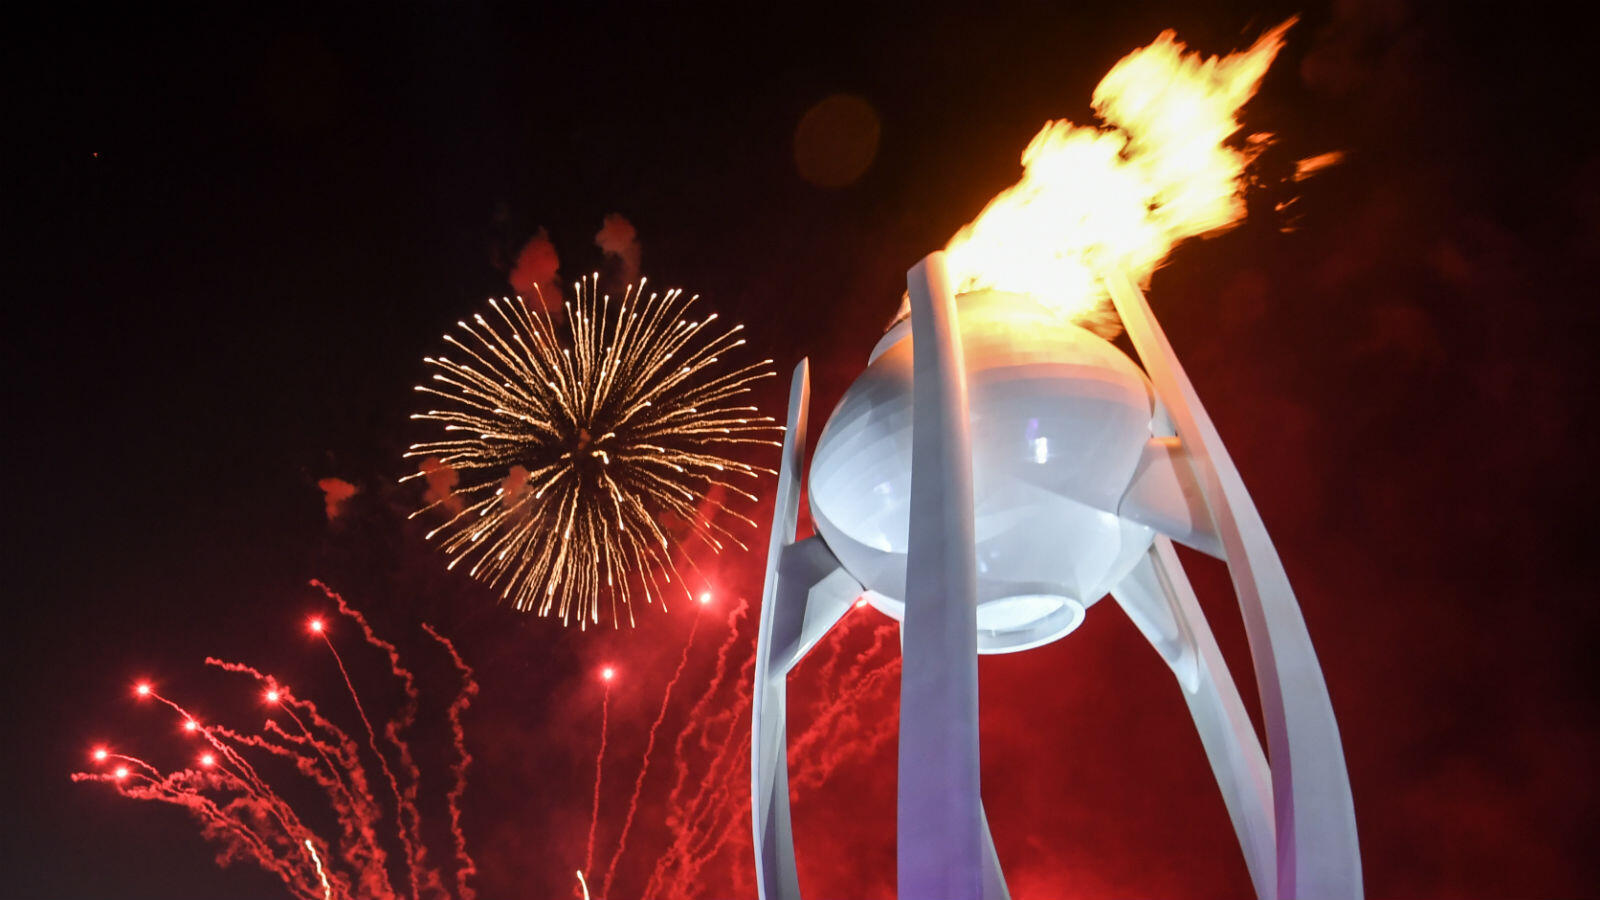 Over the next two weeks, the Olympic Flame will illuminate the Pyeongchang sky as nearly 3,000 athletes compete for a medal.